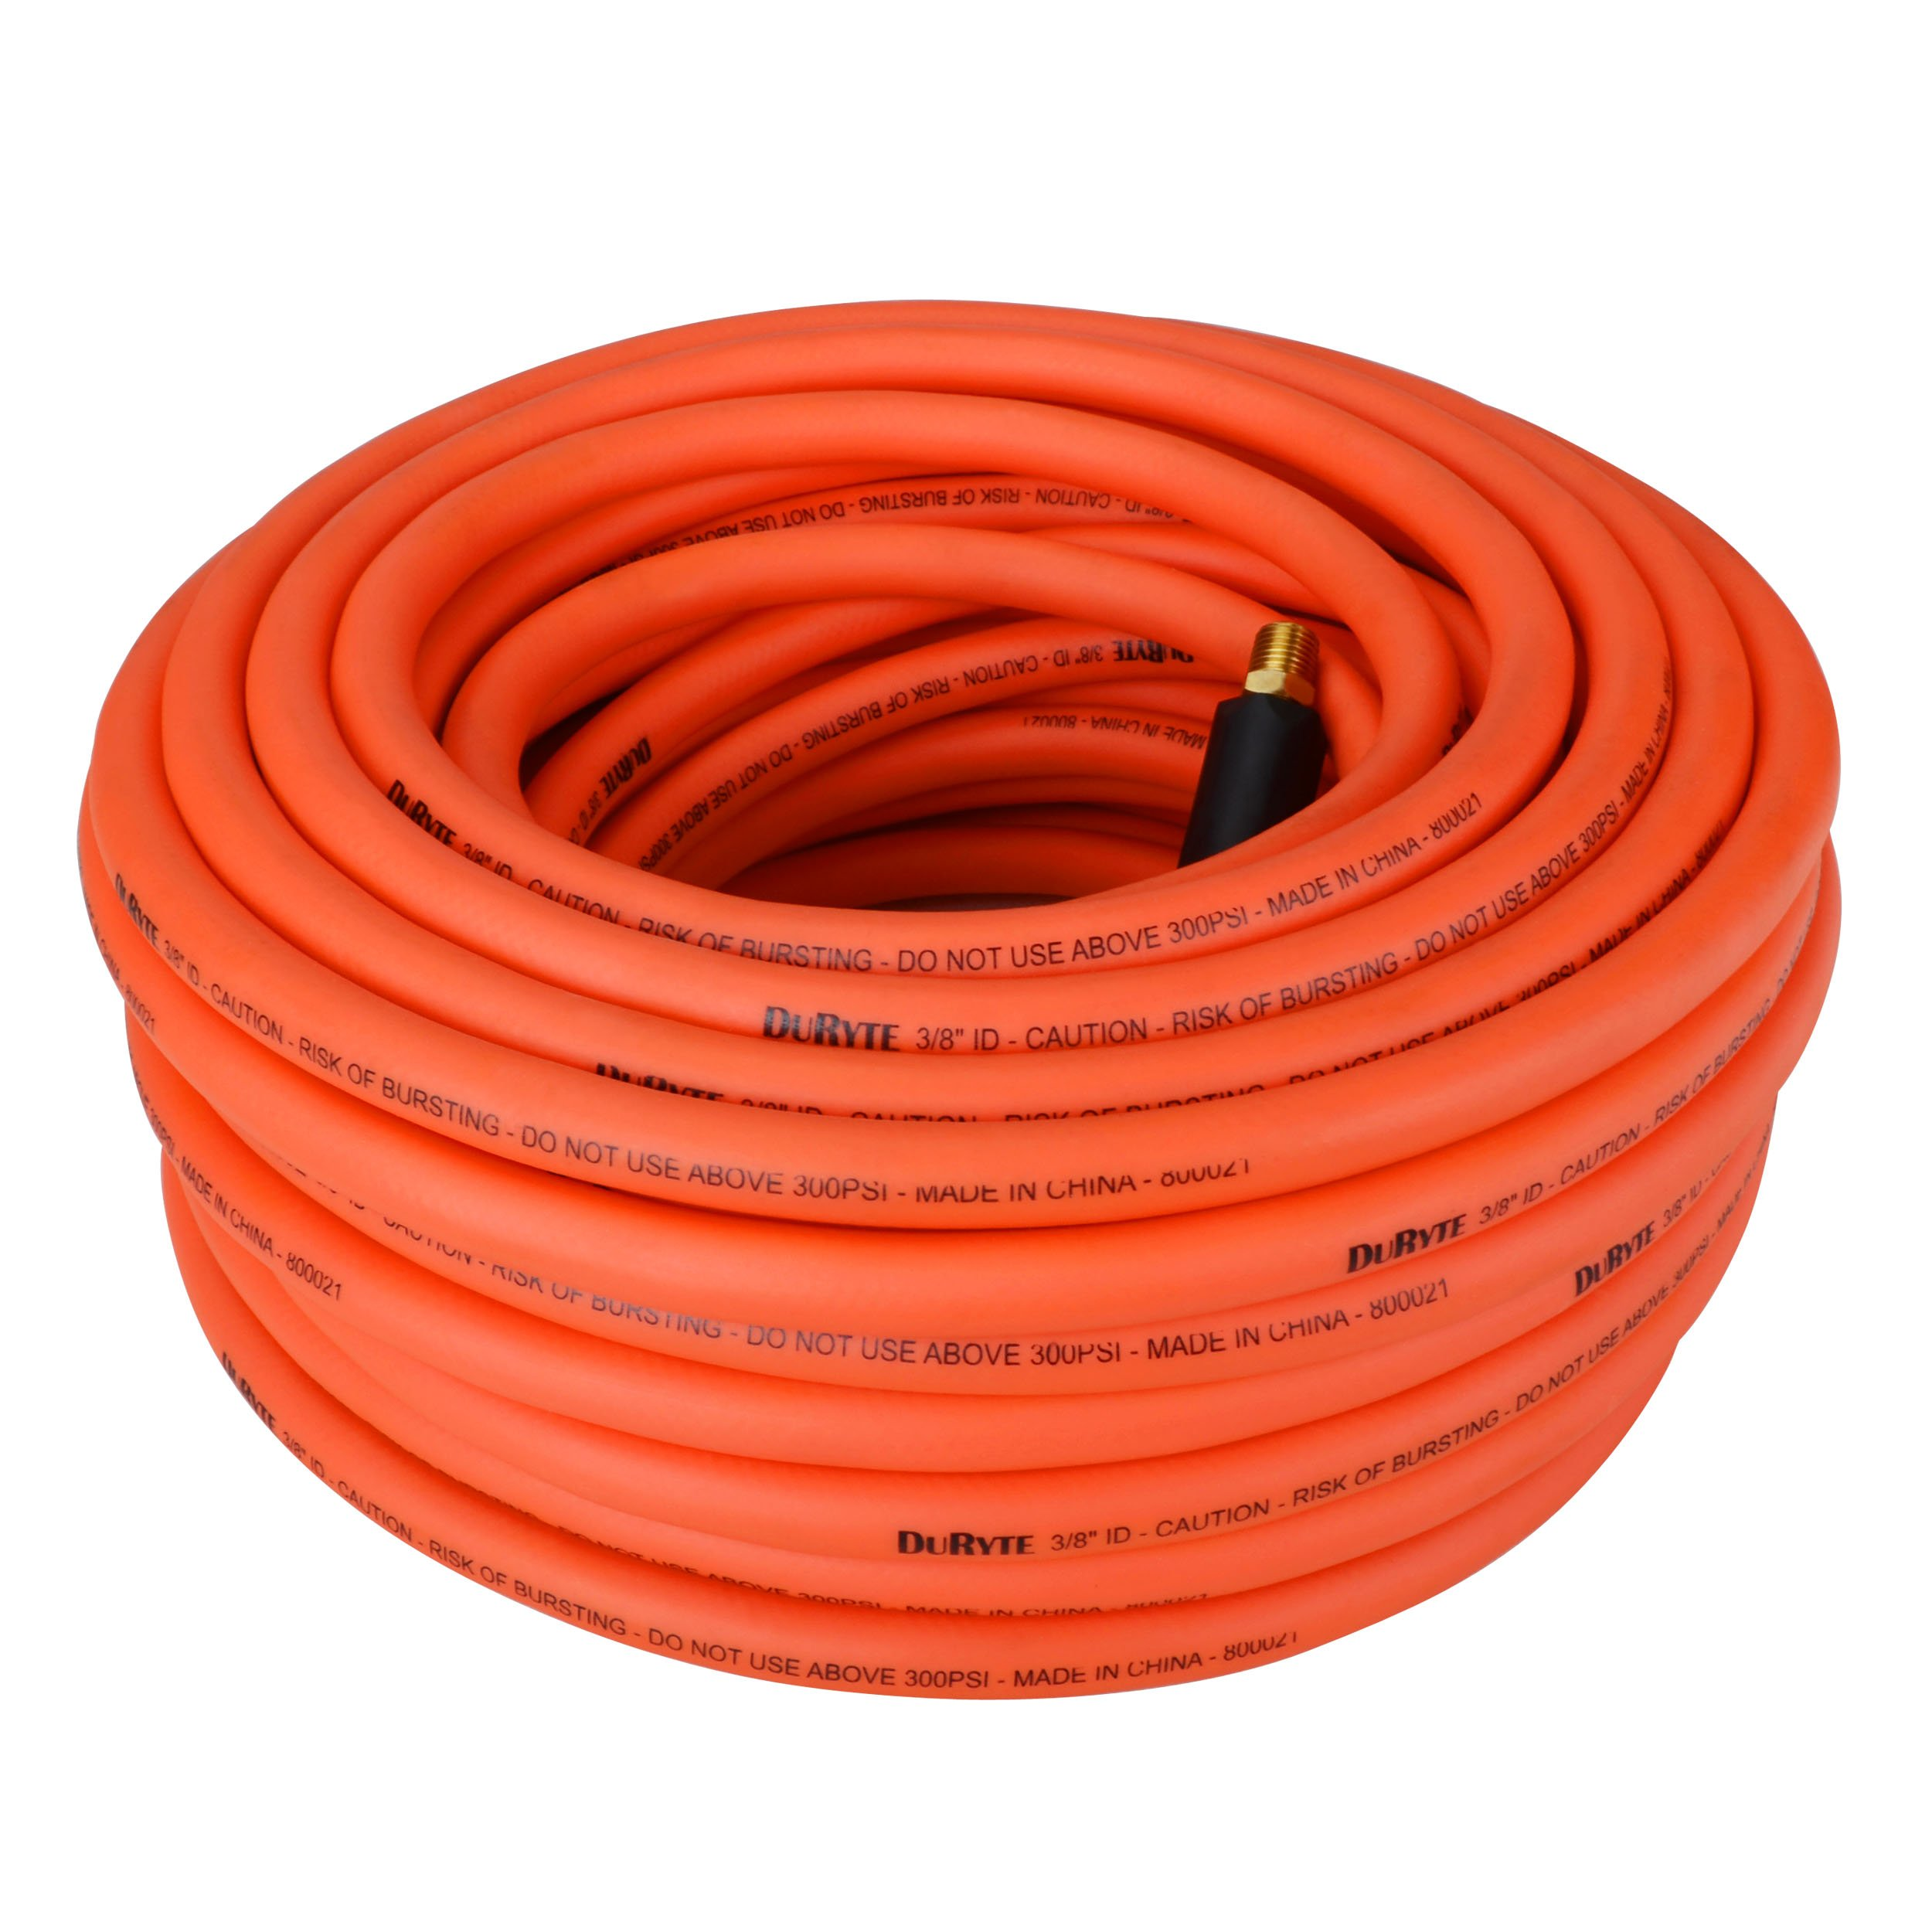 1//4-Inch MNPT Brass Ends Air Hose Non-Kinking Extreme All-Weather Flexibility Light Weight Lays Flat Heavy Duty PVC//Rubber 3//8-Inch by 50-Feet Soft DuRyte Pro 300 PSI Hybrid